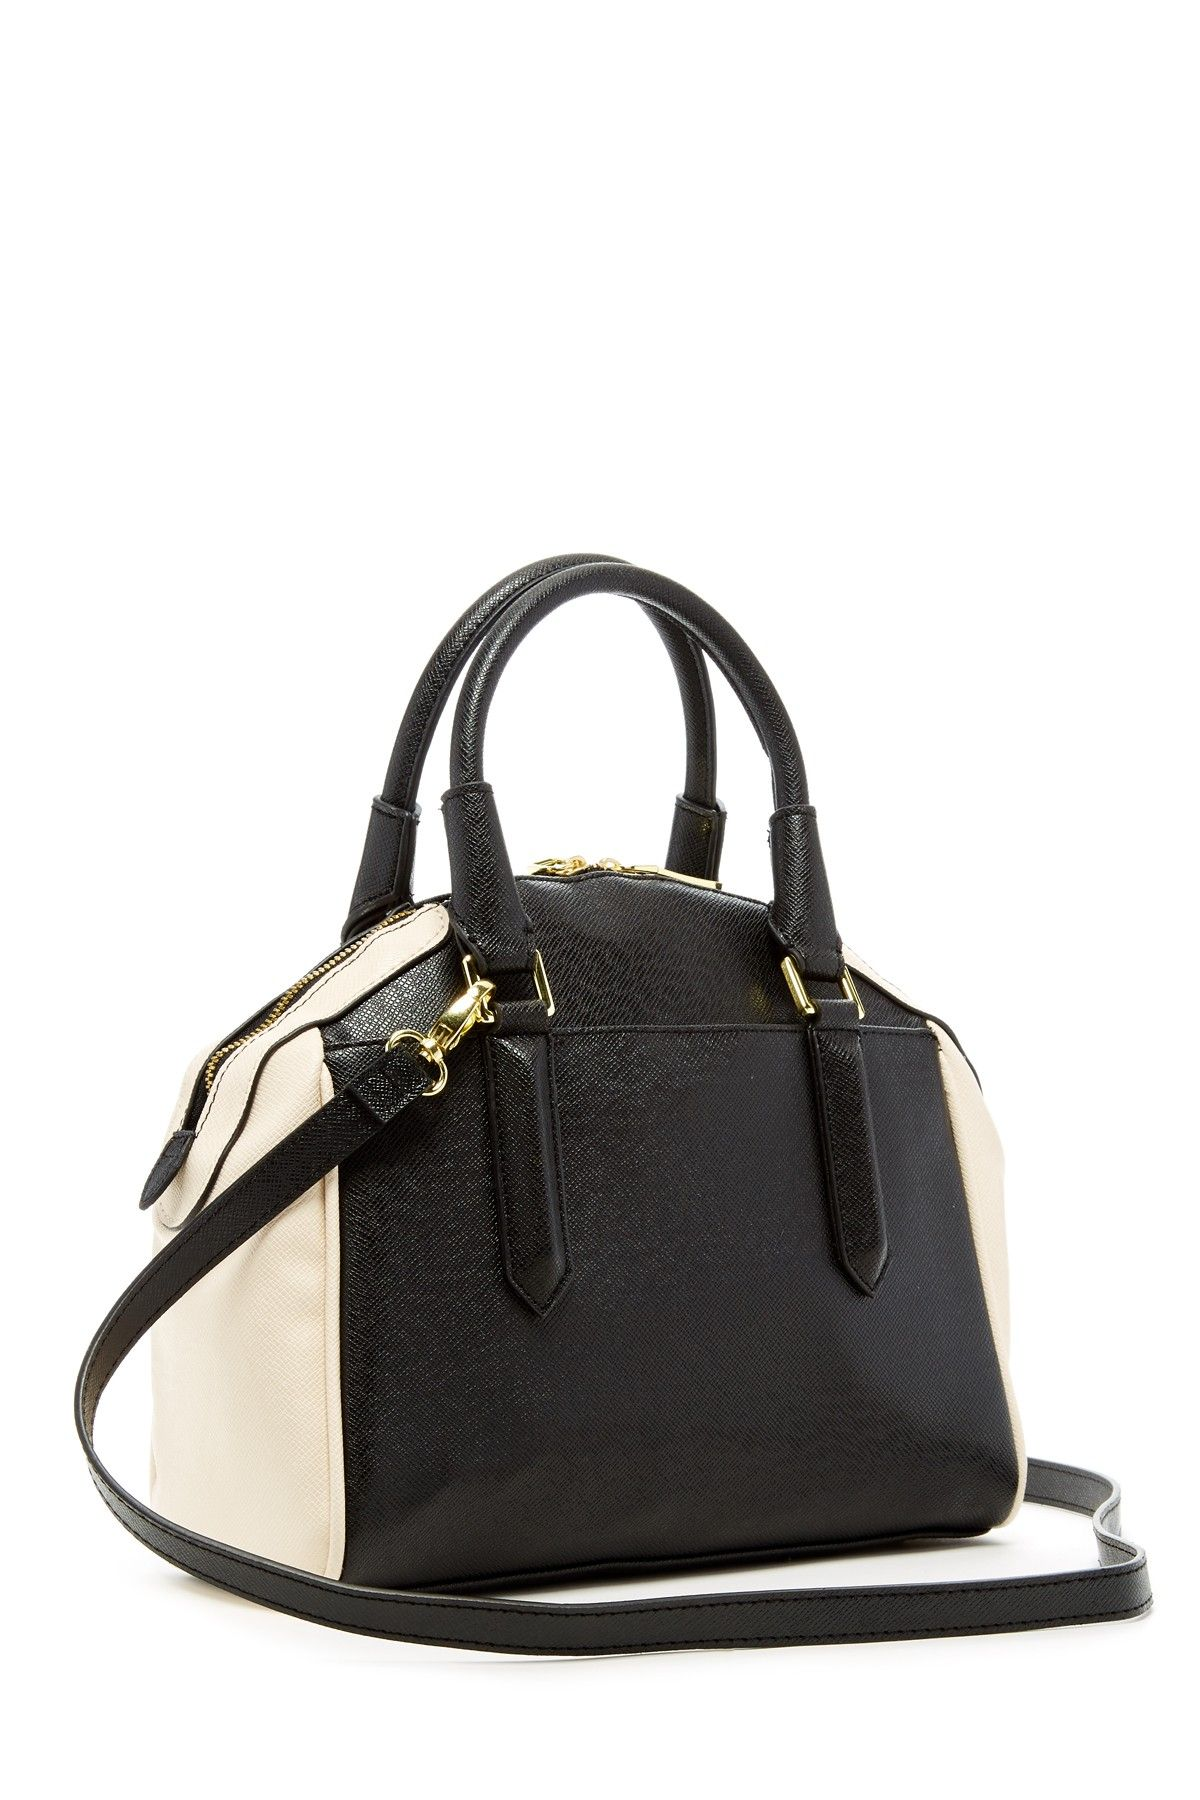 04a1e13a973c London Fog - Anisa Satchel at Nordstrom Rack. Free Shipping on orders over   100.